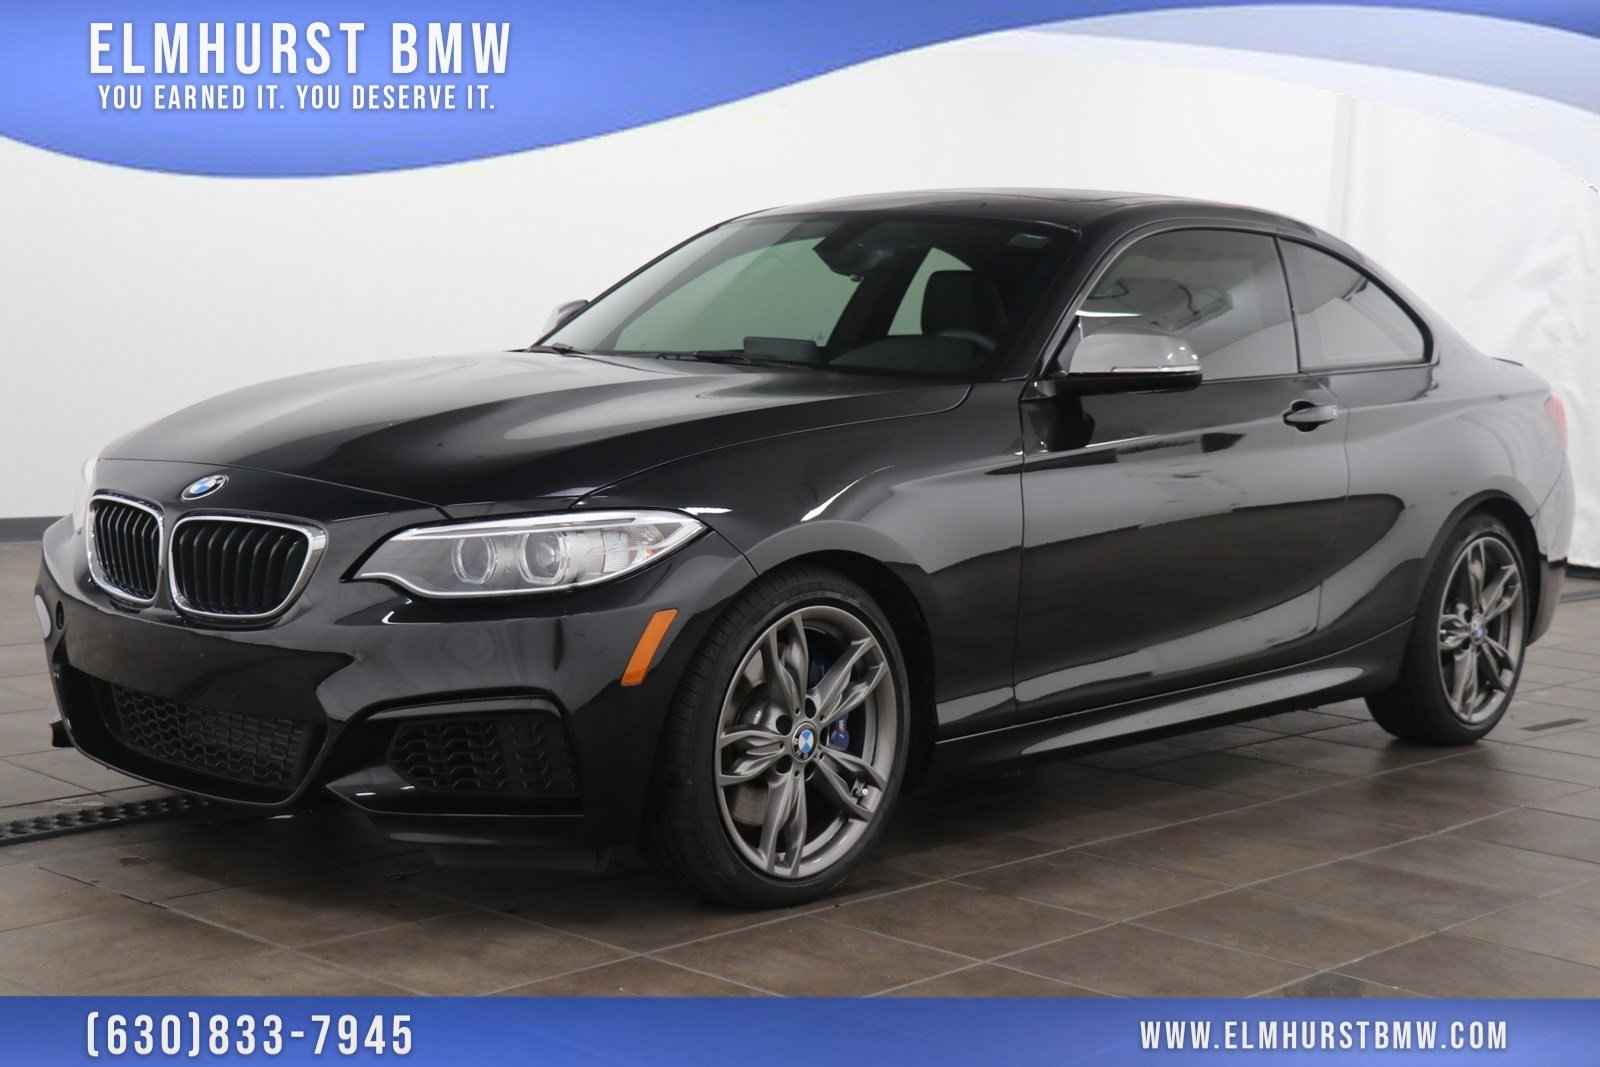 Certified Pre-Owned 2016 BMW 2 Series M235i xDrive Coupe